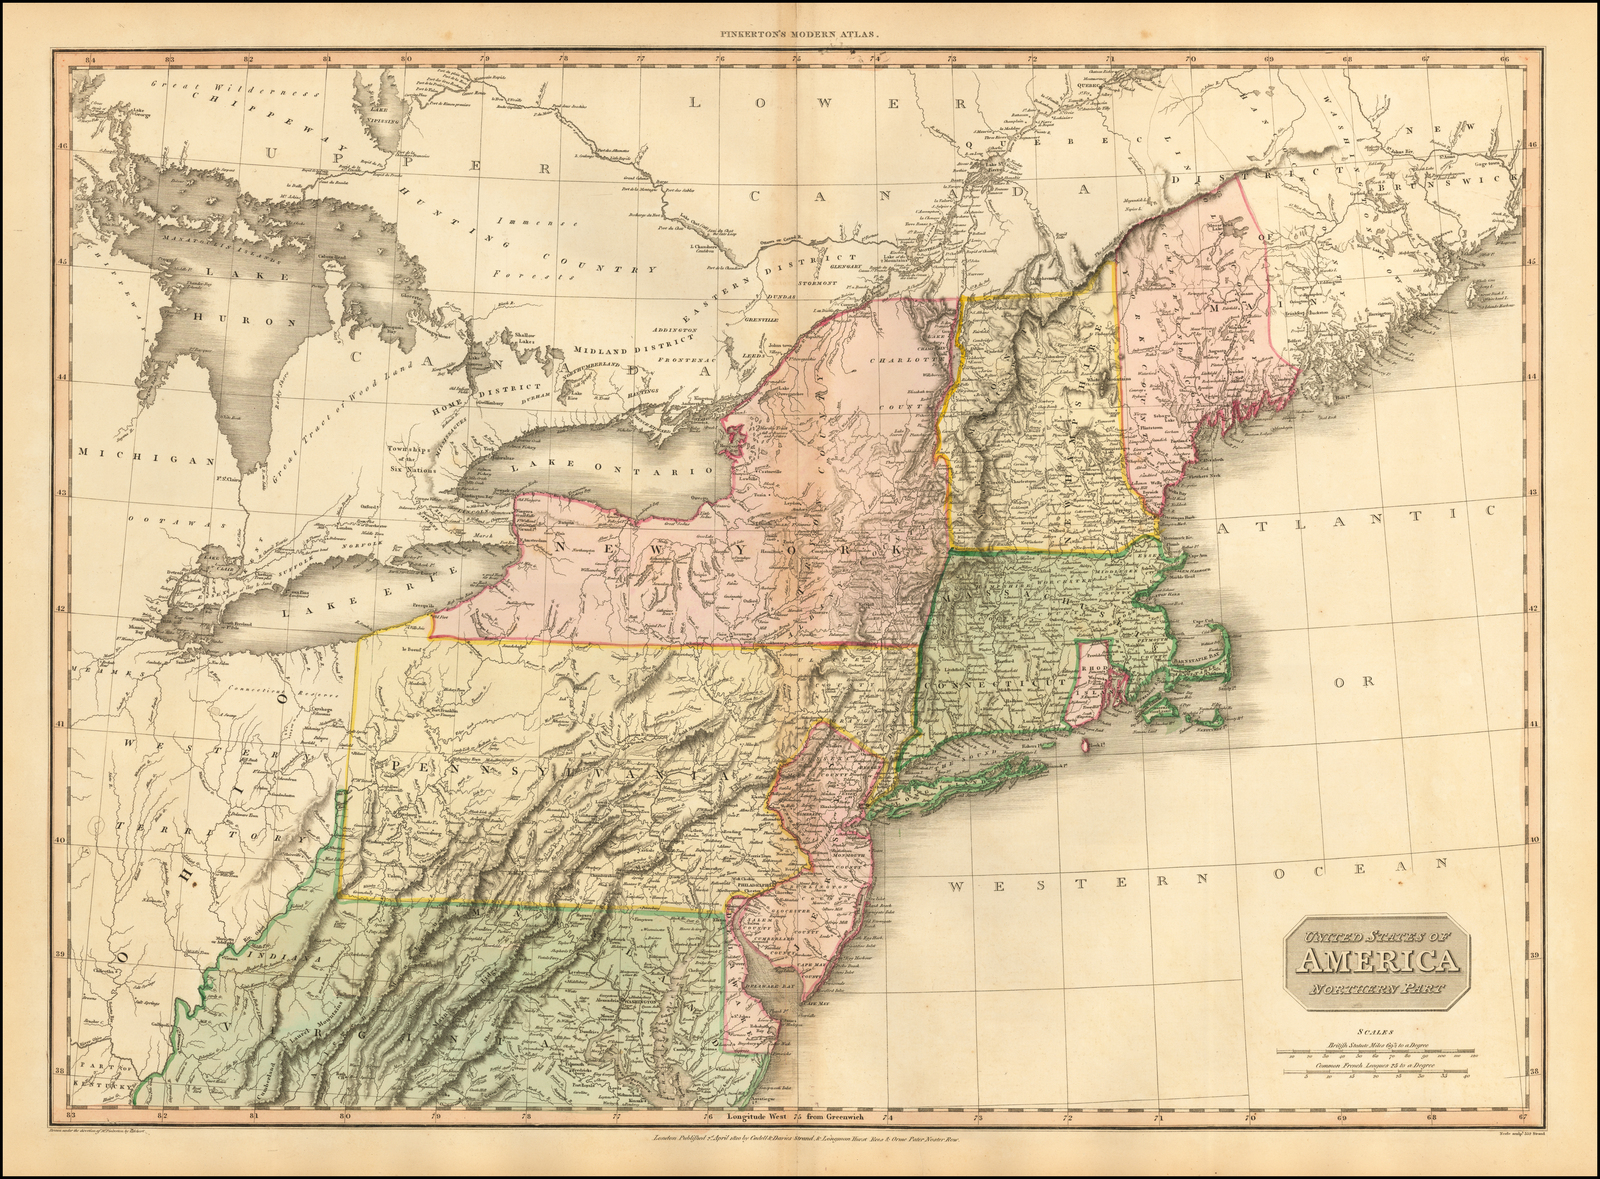 Image of: United States Of America Northern Part Barry Lawrence Ruderman Antique Maps Inc